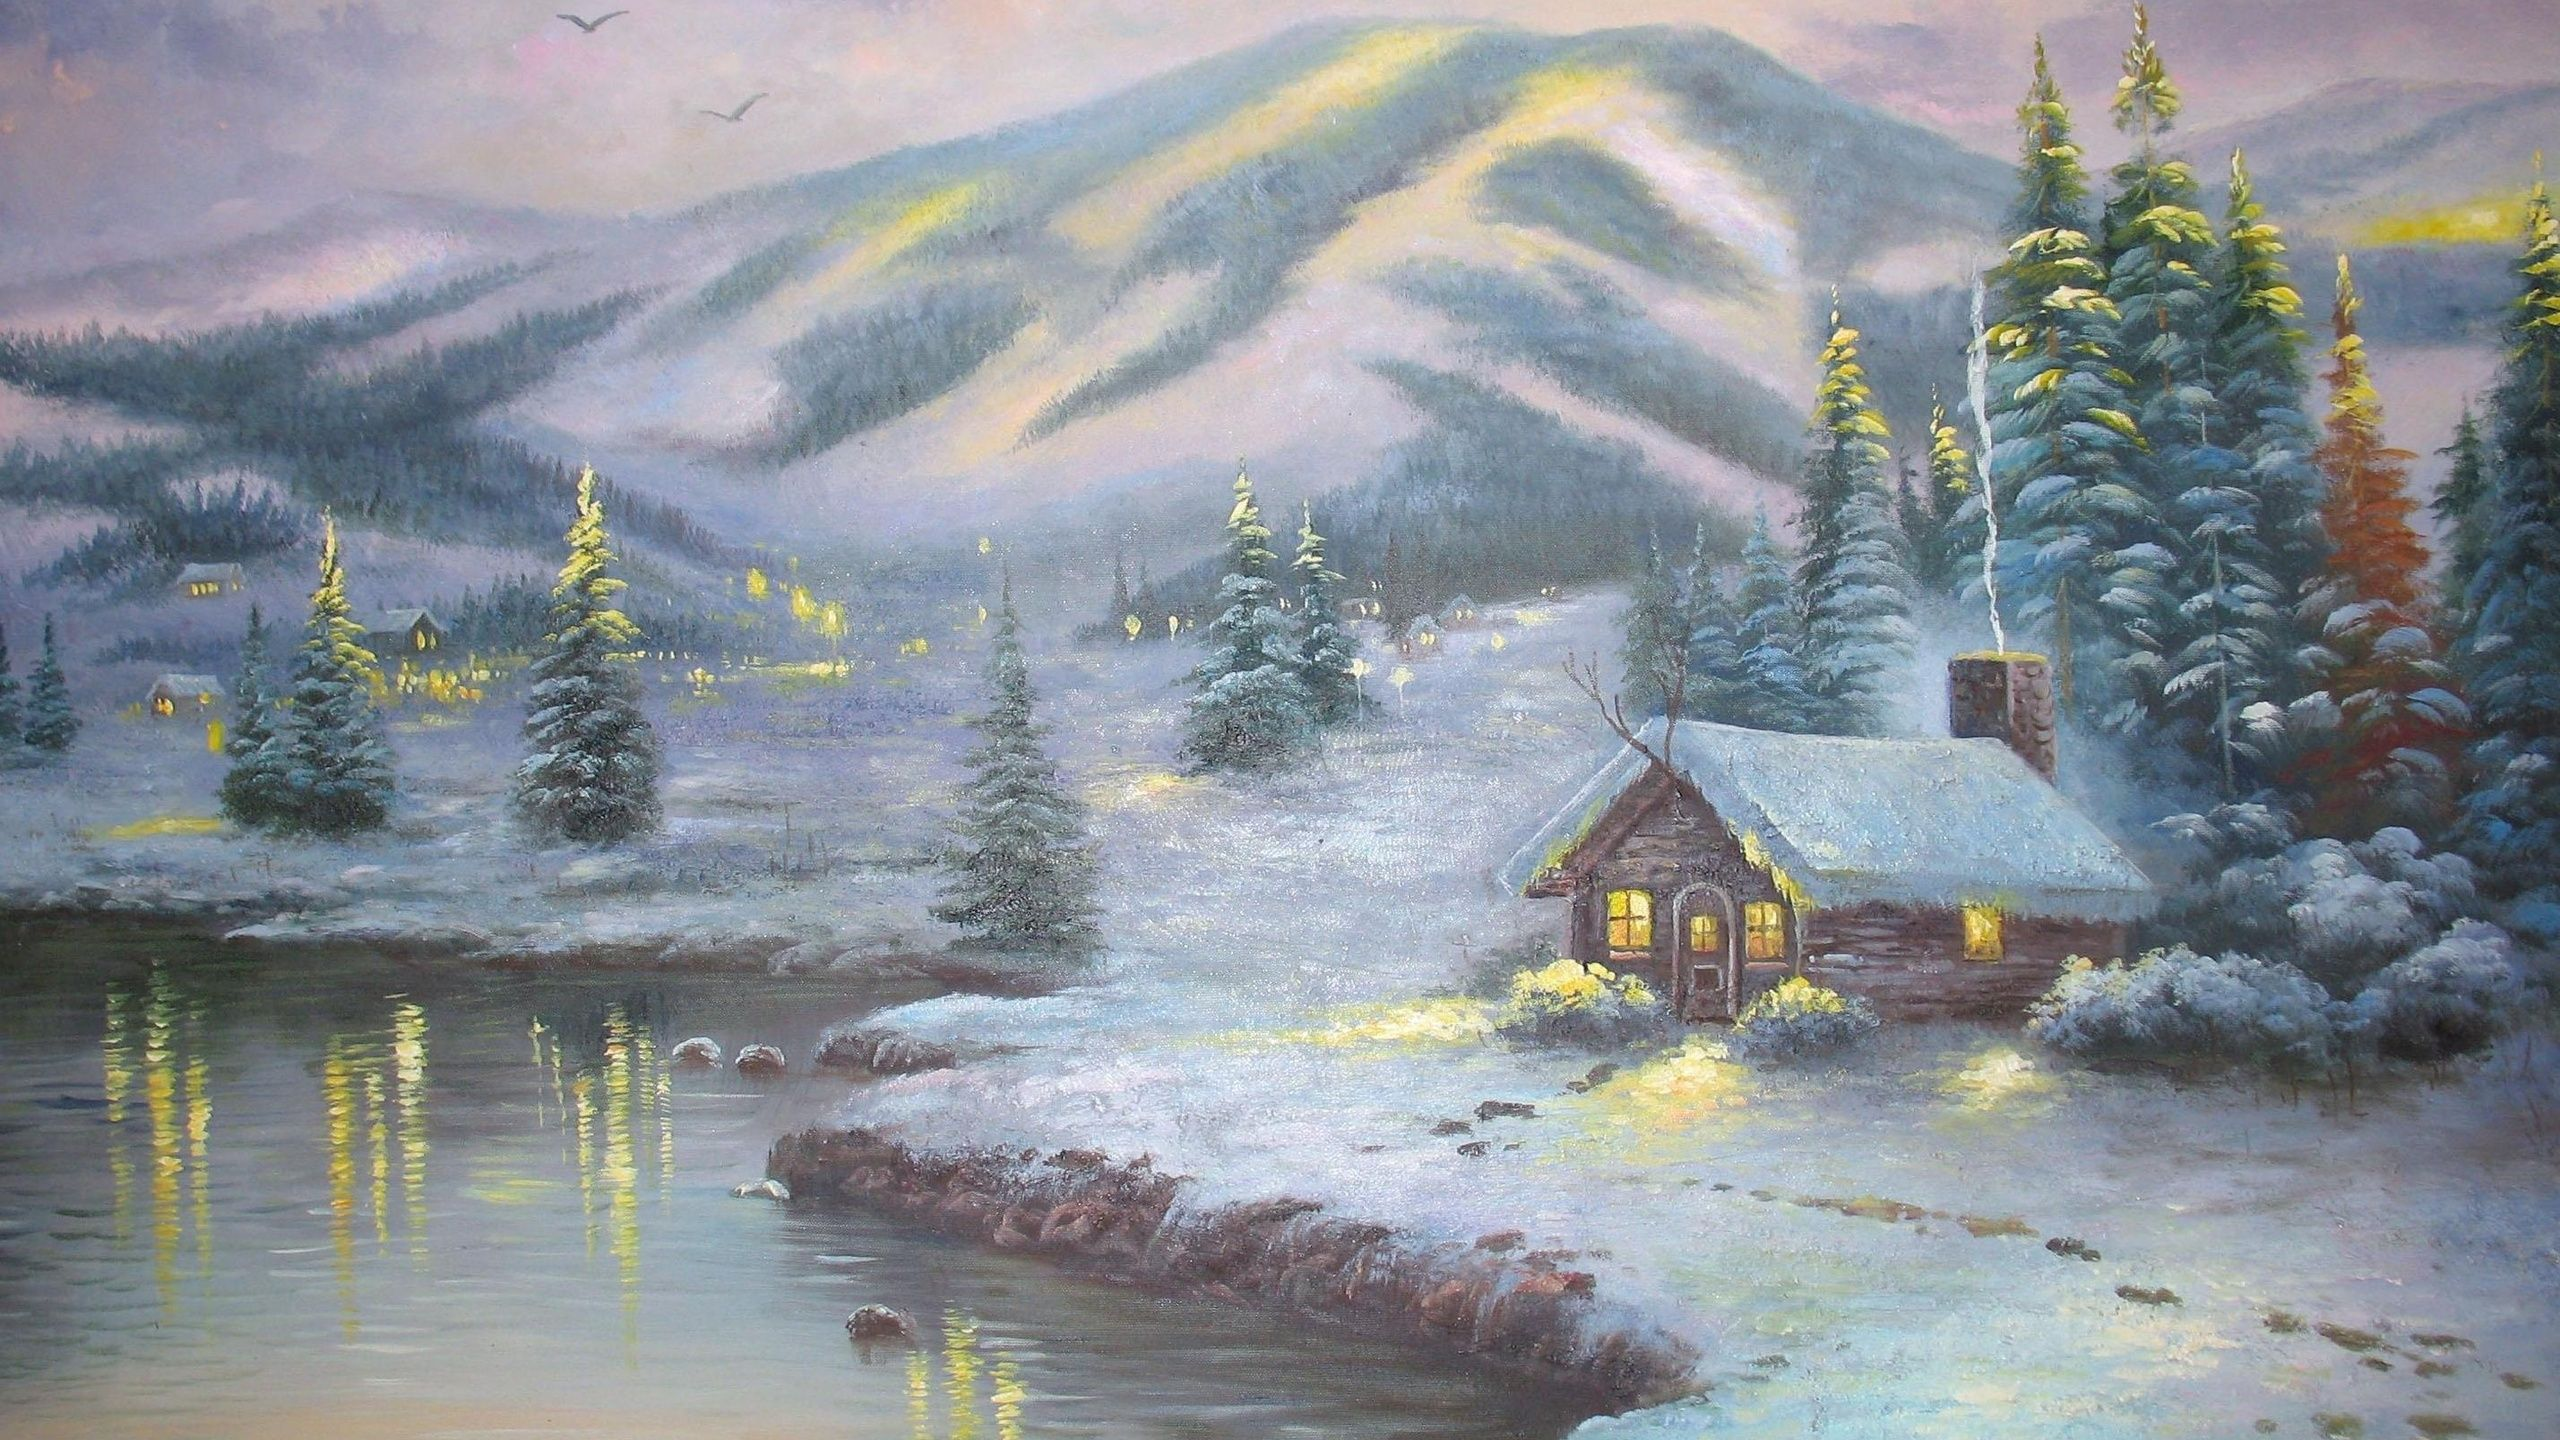 Thomas Kinkade Winter Wallpaper Hintergrundbilder Winter Winterbilder Winterlandschaft